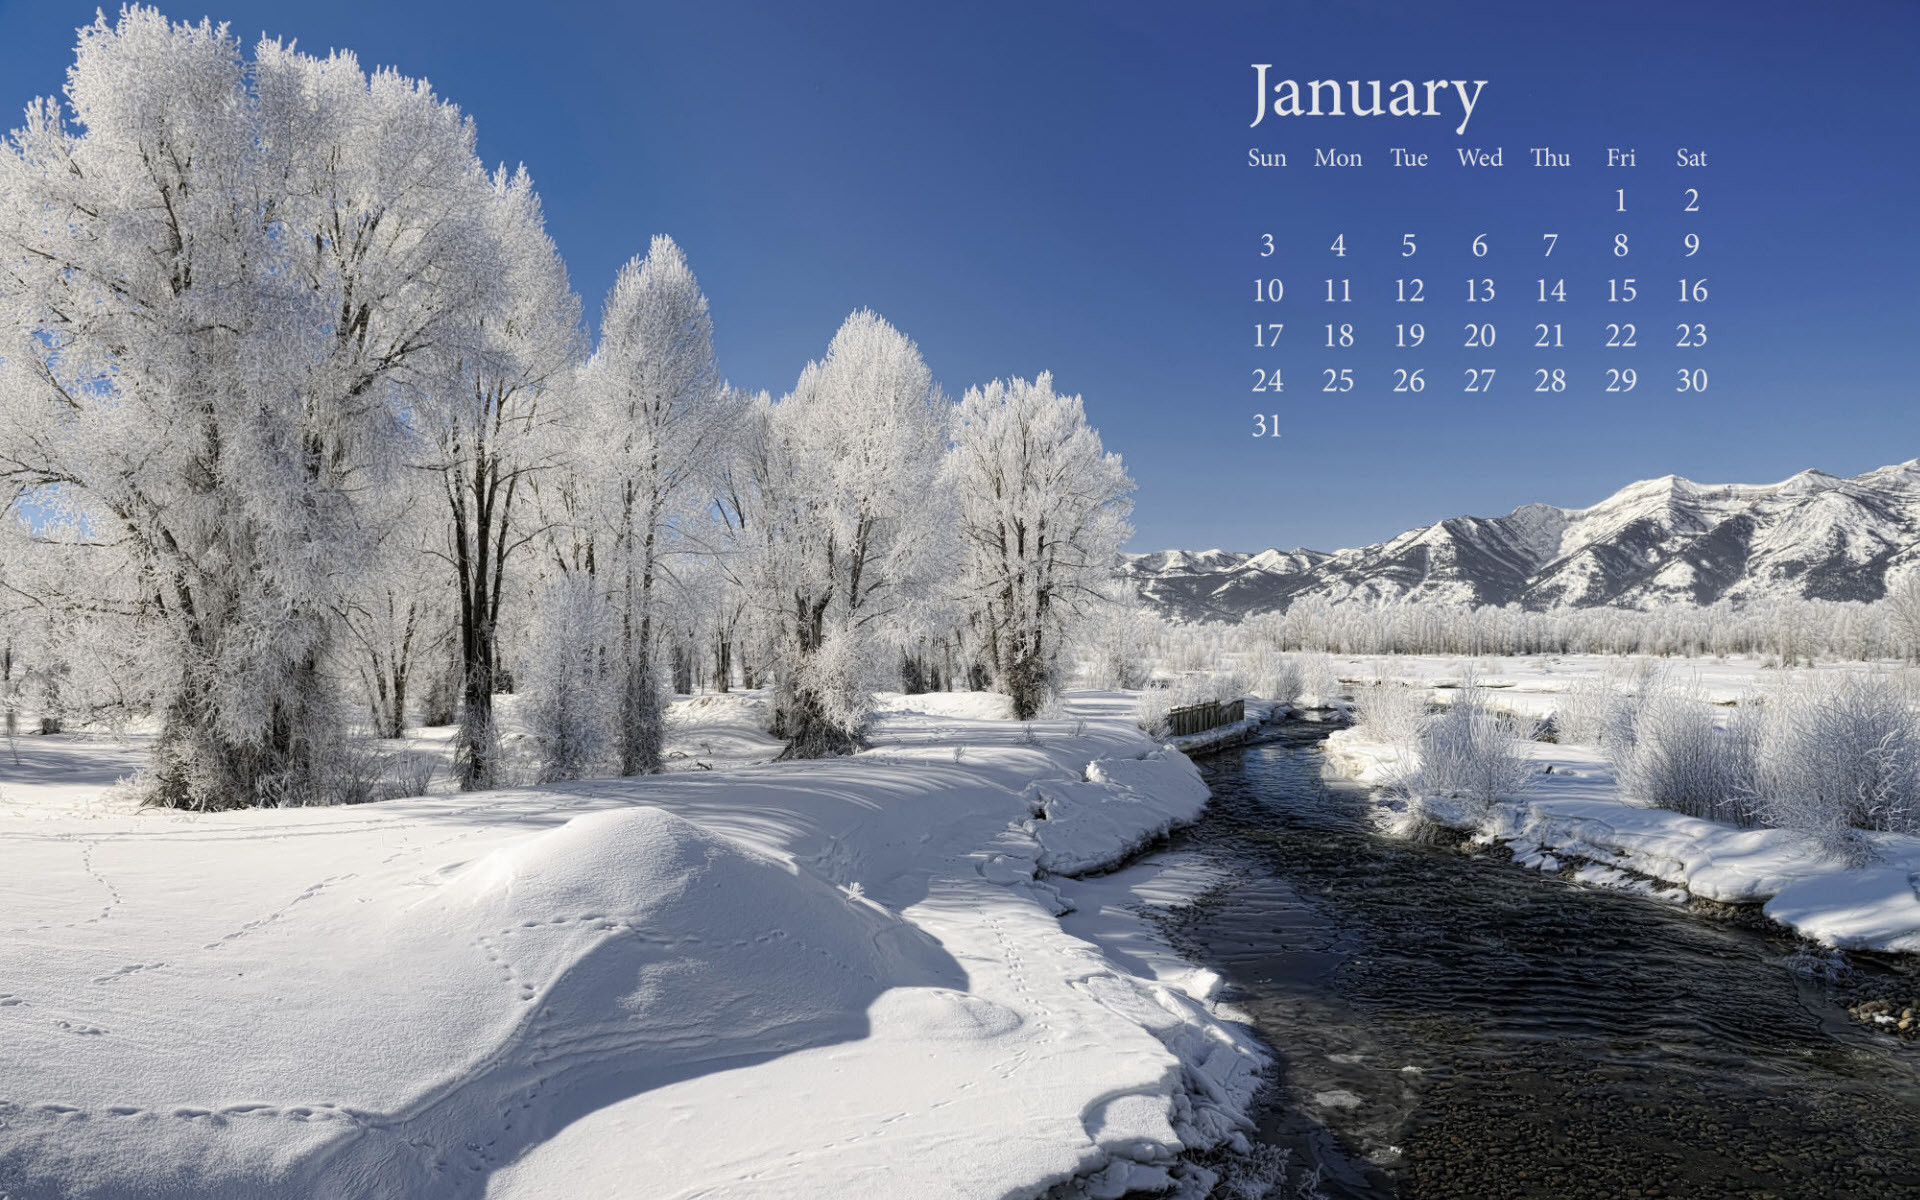 Fresh Snow January 2010 Calender Wallpapers   HD Wallpapers